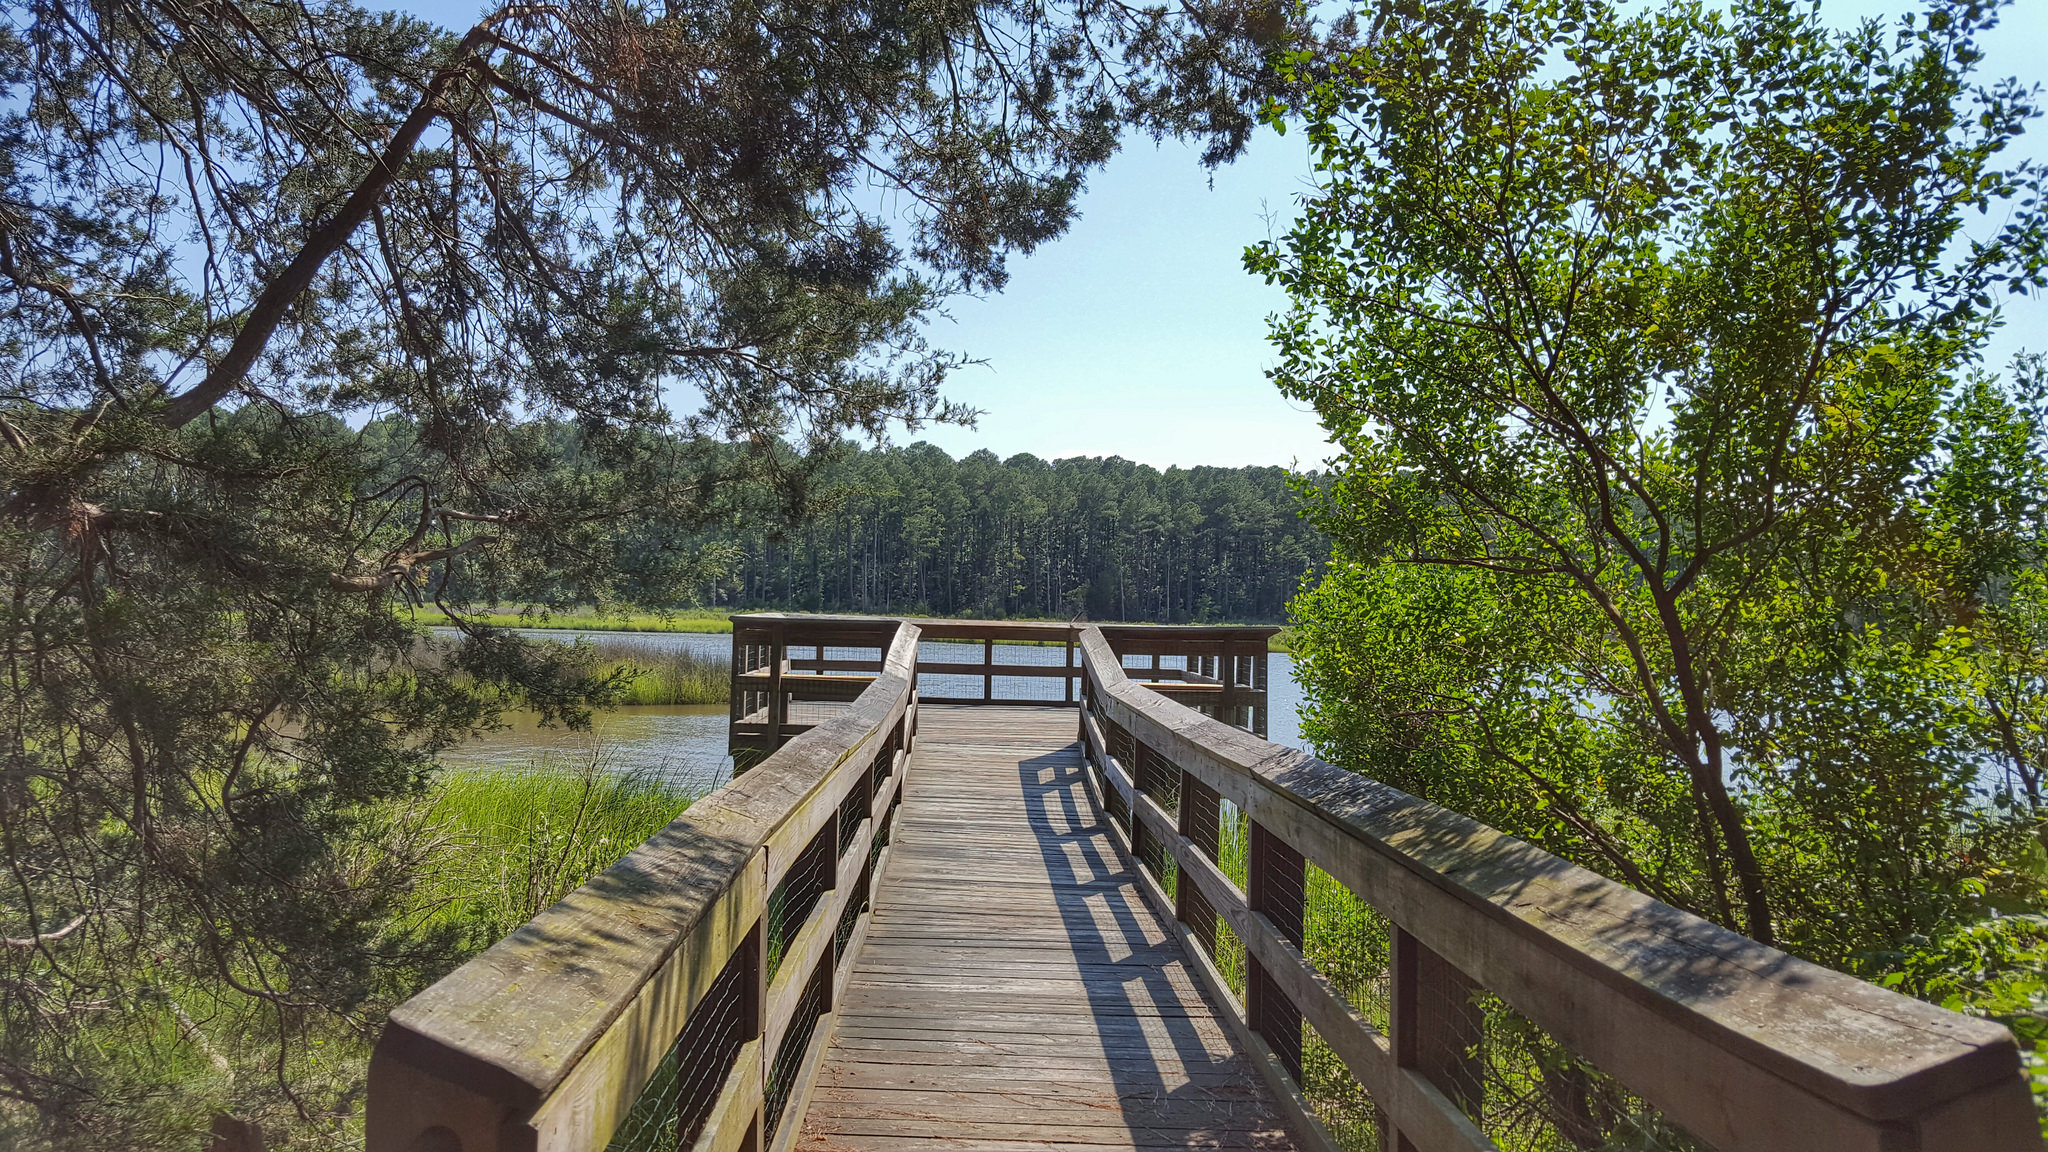 9 Ways to Spend a Family Weekend at Belle Isle State Park